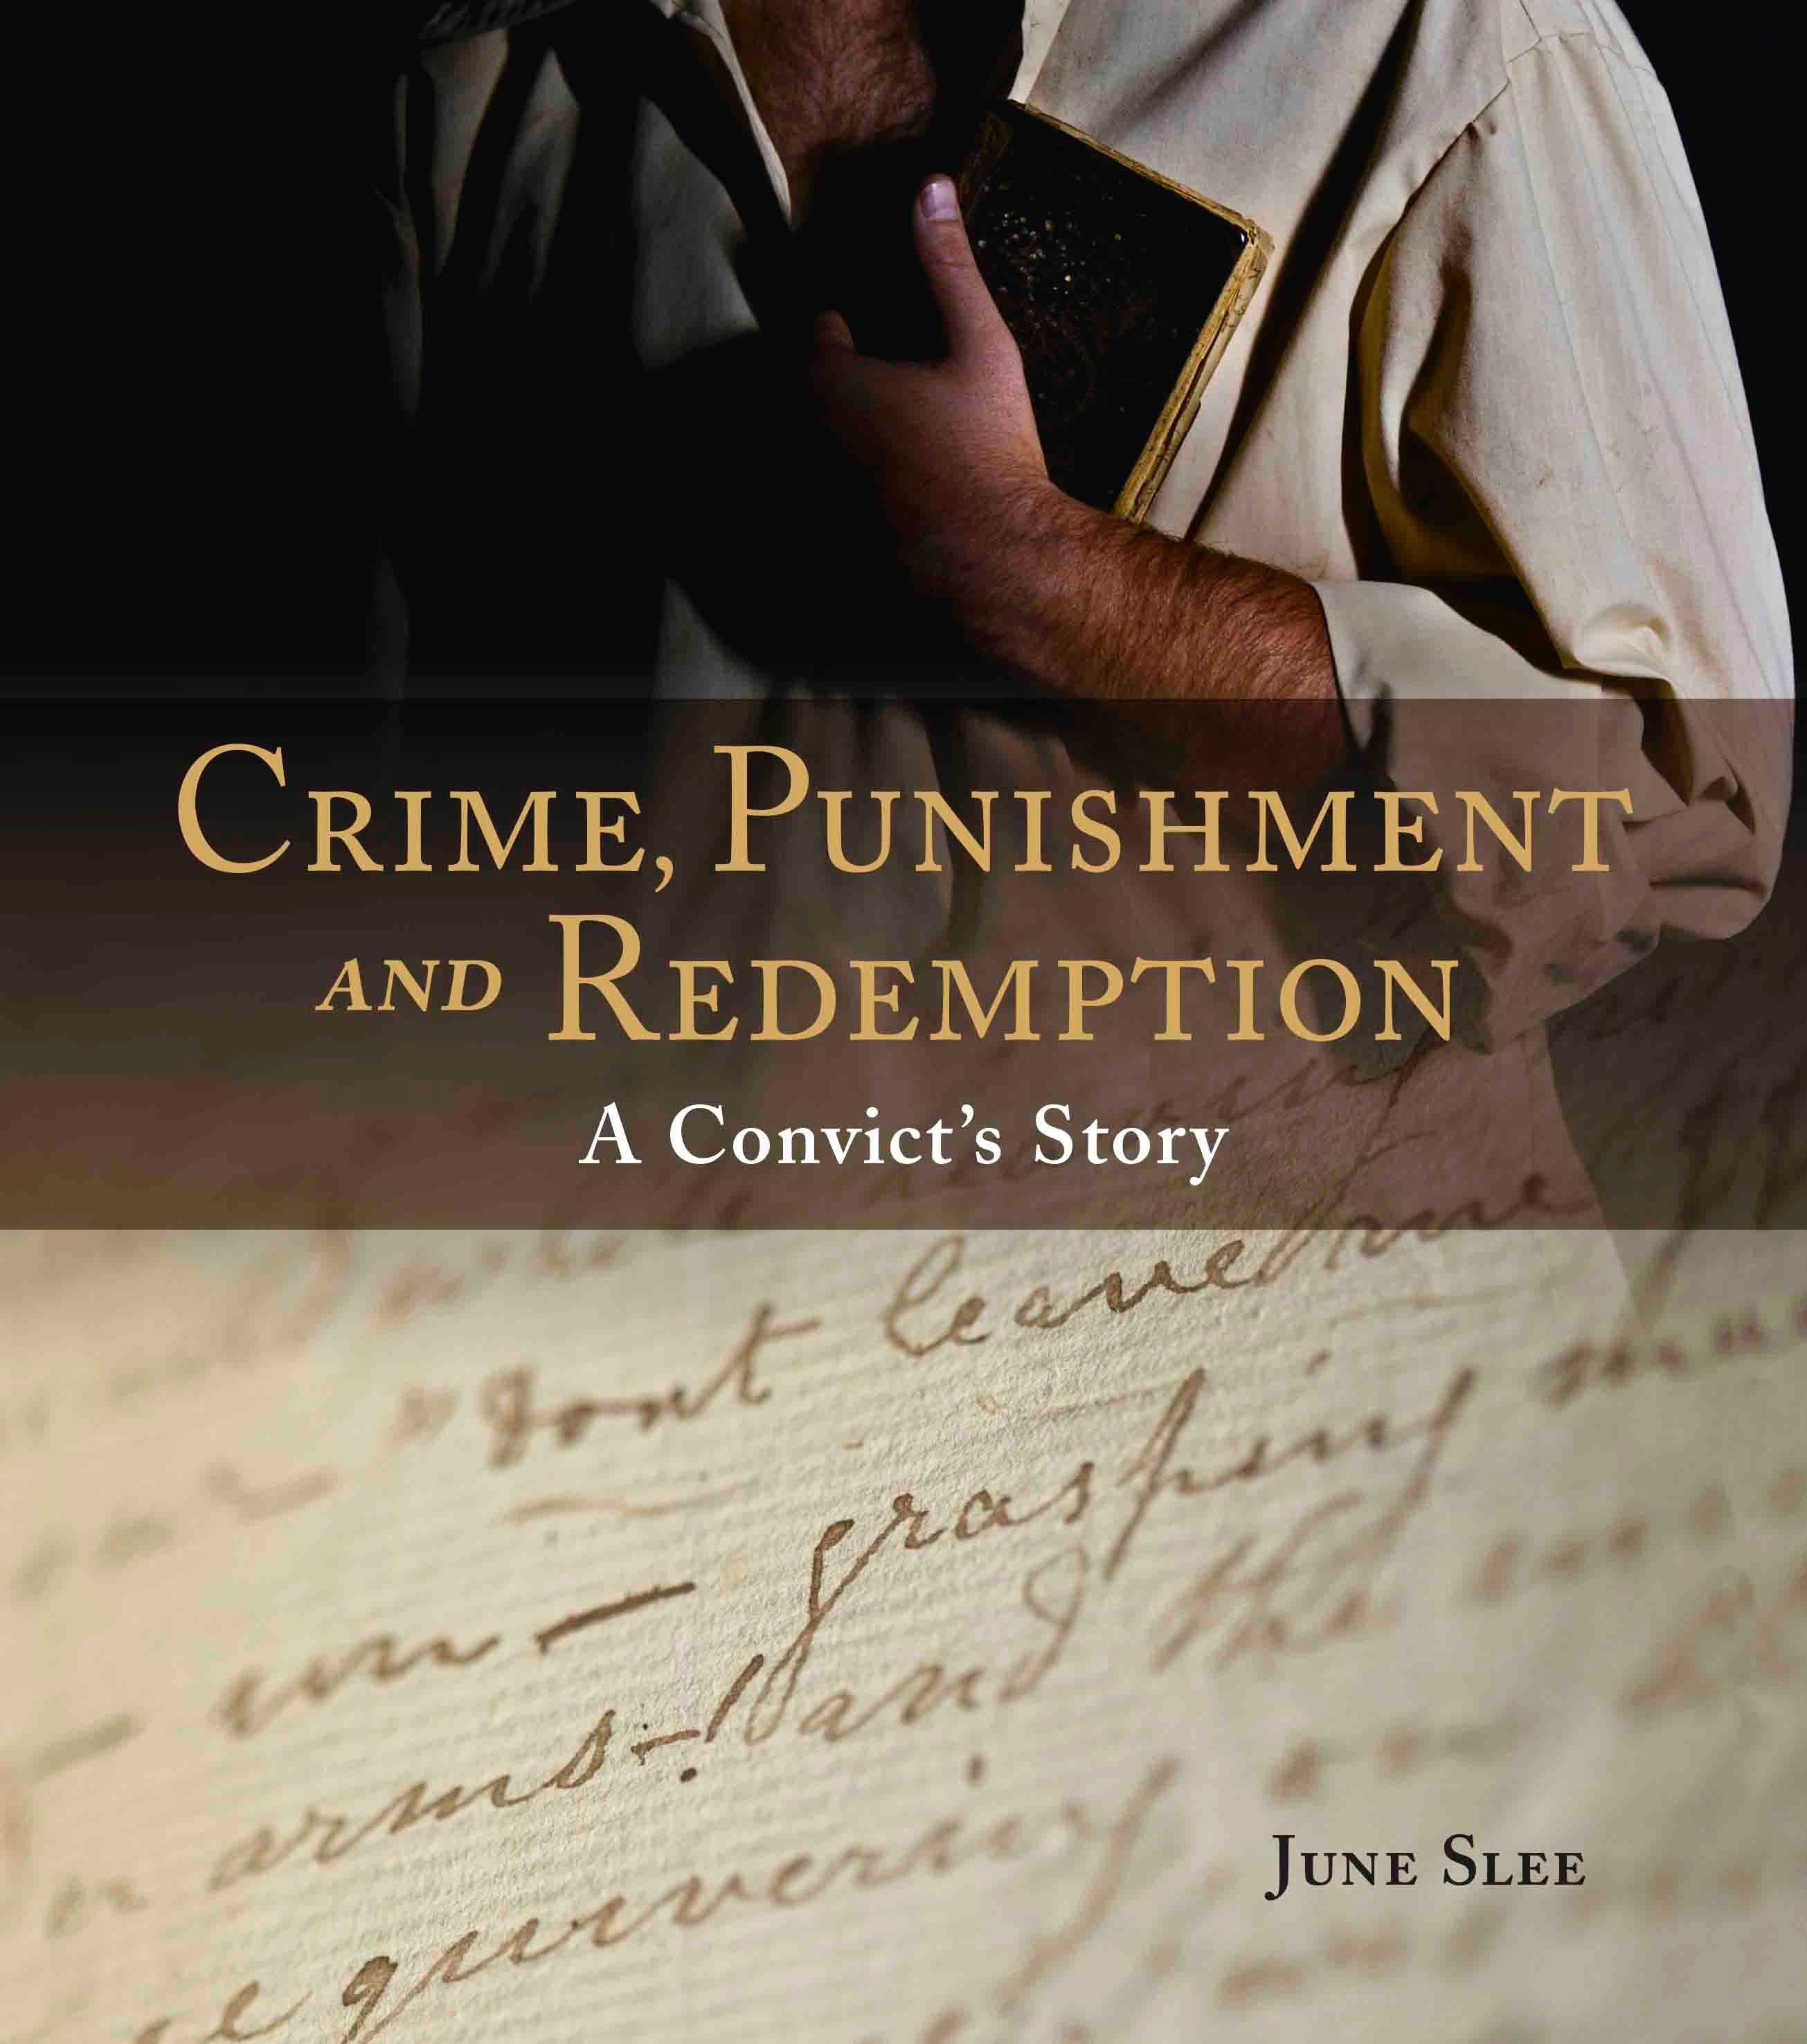 'Crime, Punishment & Redemption: A Convict's Story', author June Slee, published by the National Library of Australia